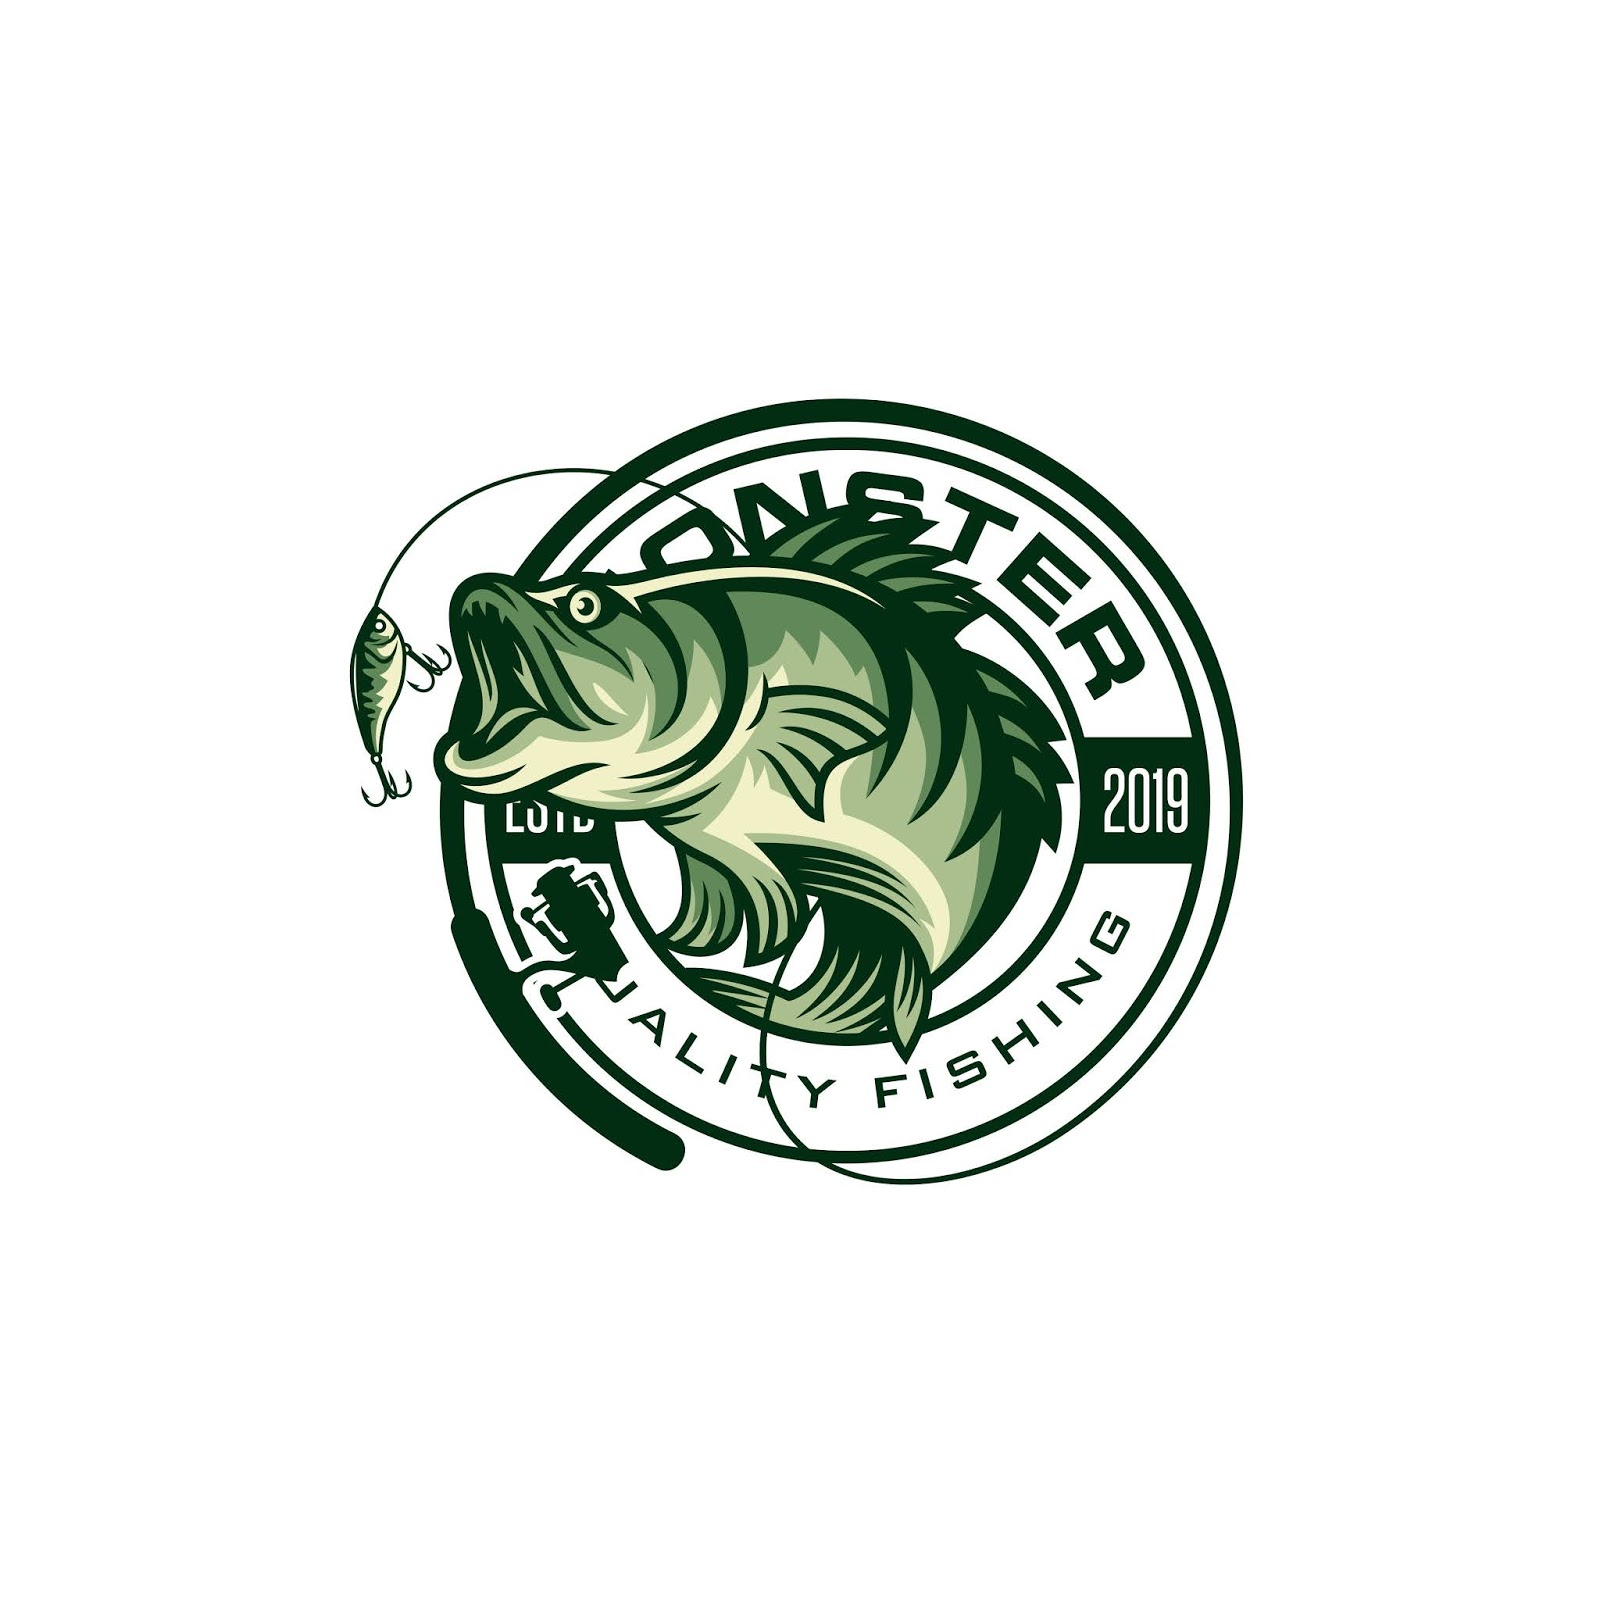 Vintage Fishing Logo Free Download Vector CDR, AI, EPS and PNG Formats